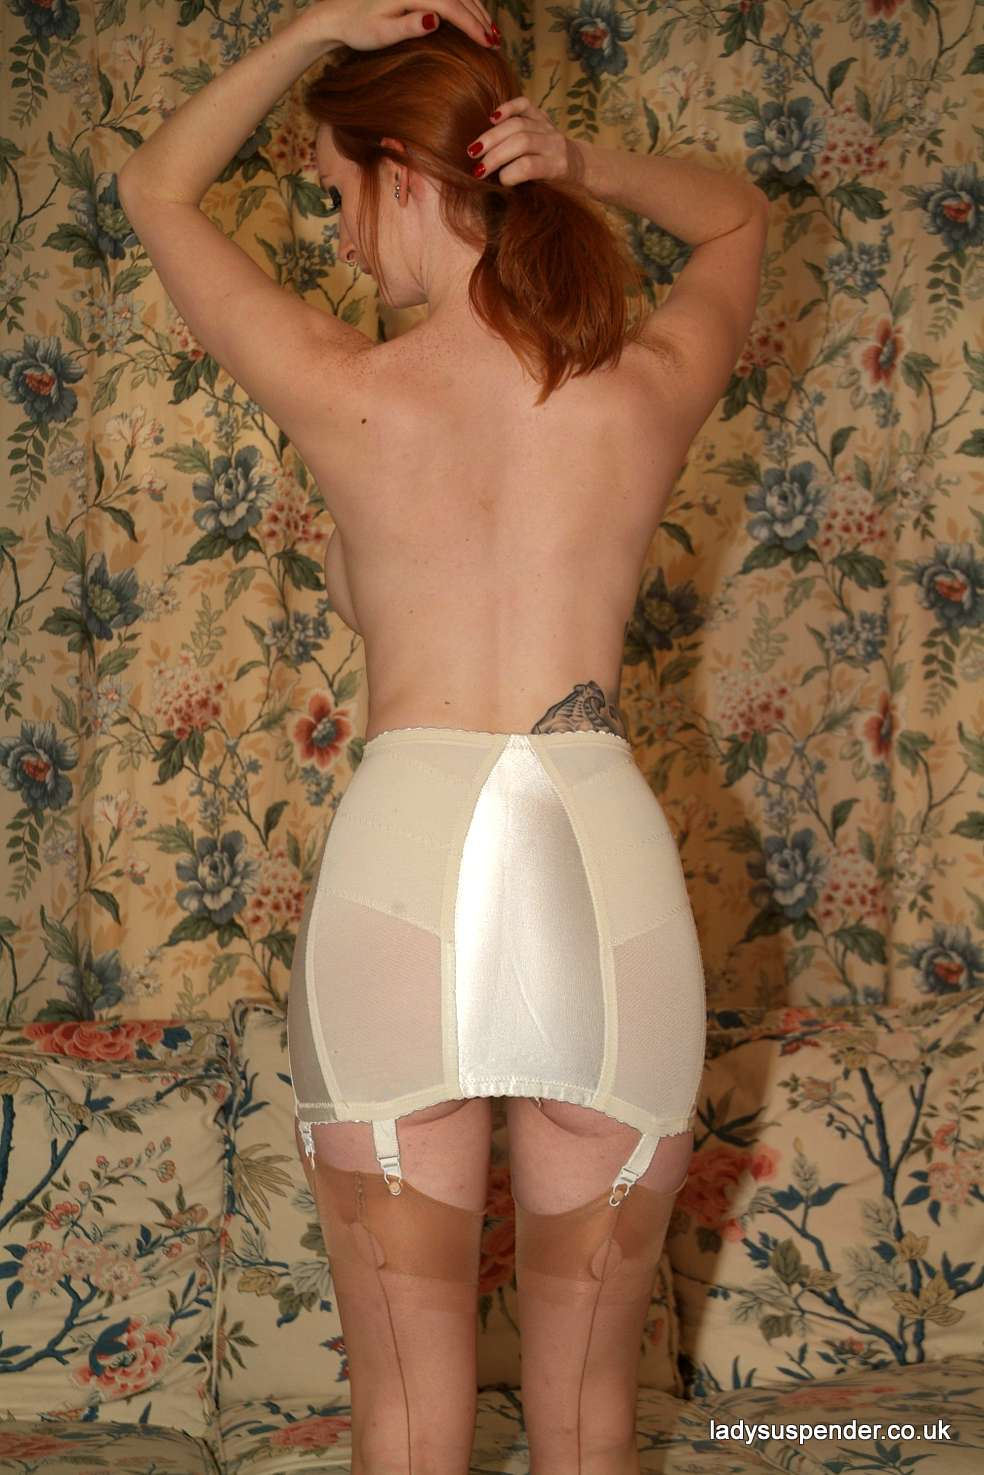 Milfs in girdles amusing